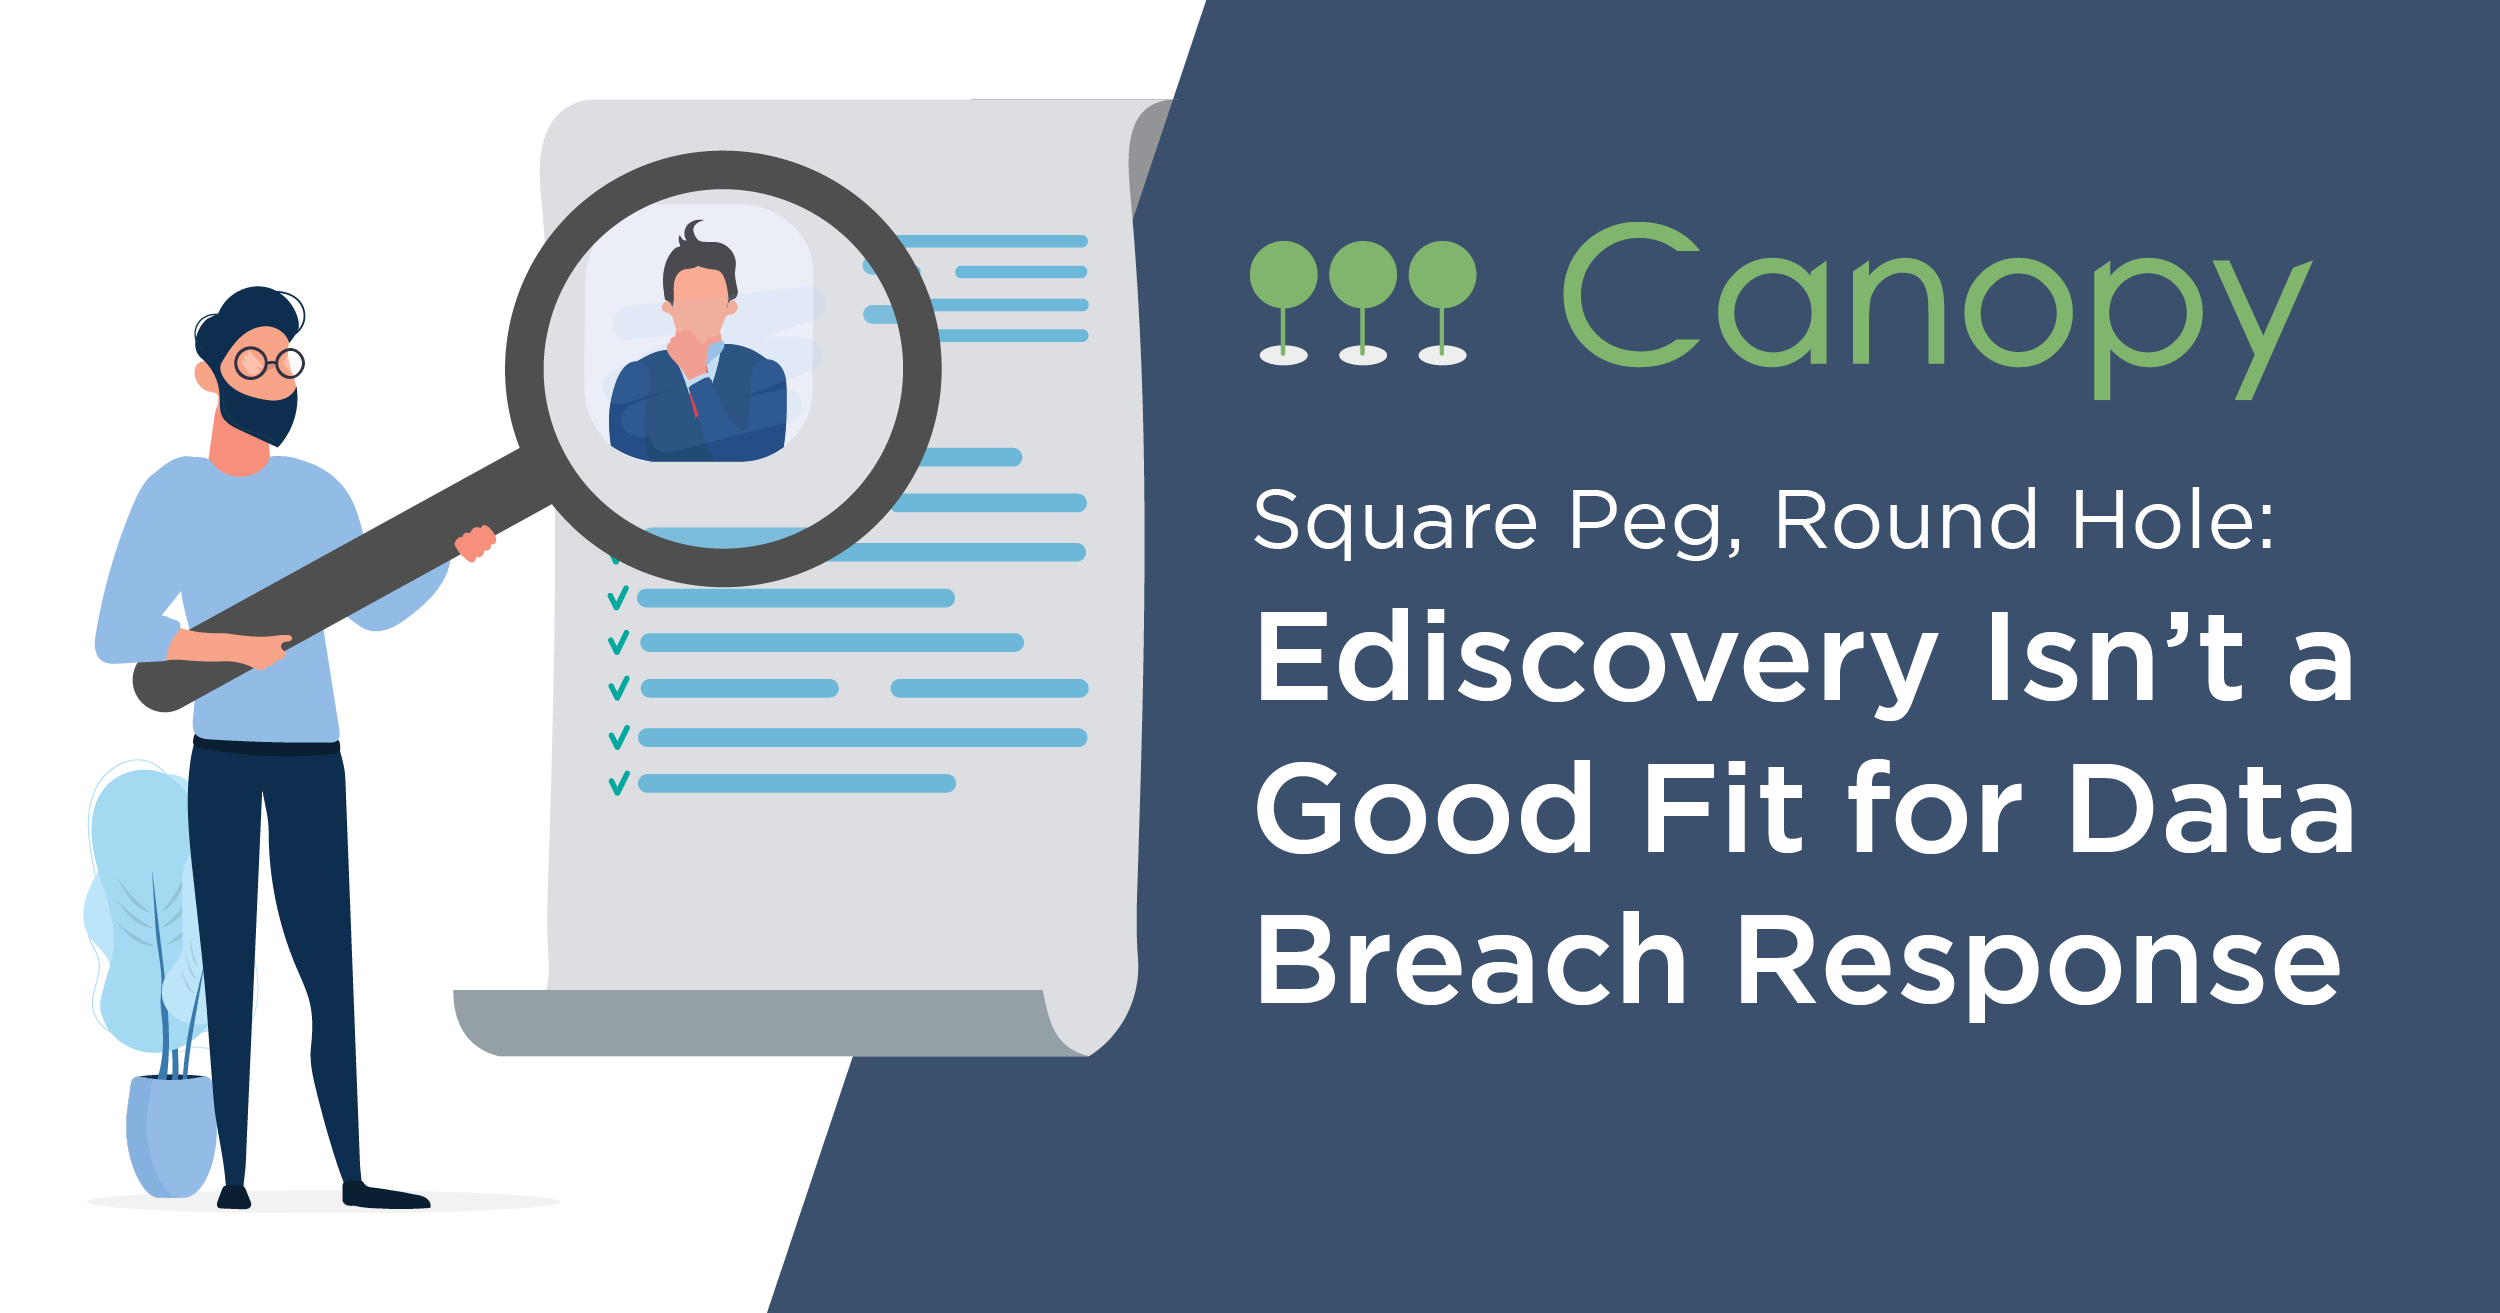 Square Peg, Round Hole: Ediscovery Isn't a Good Fit for Data Breach Response